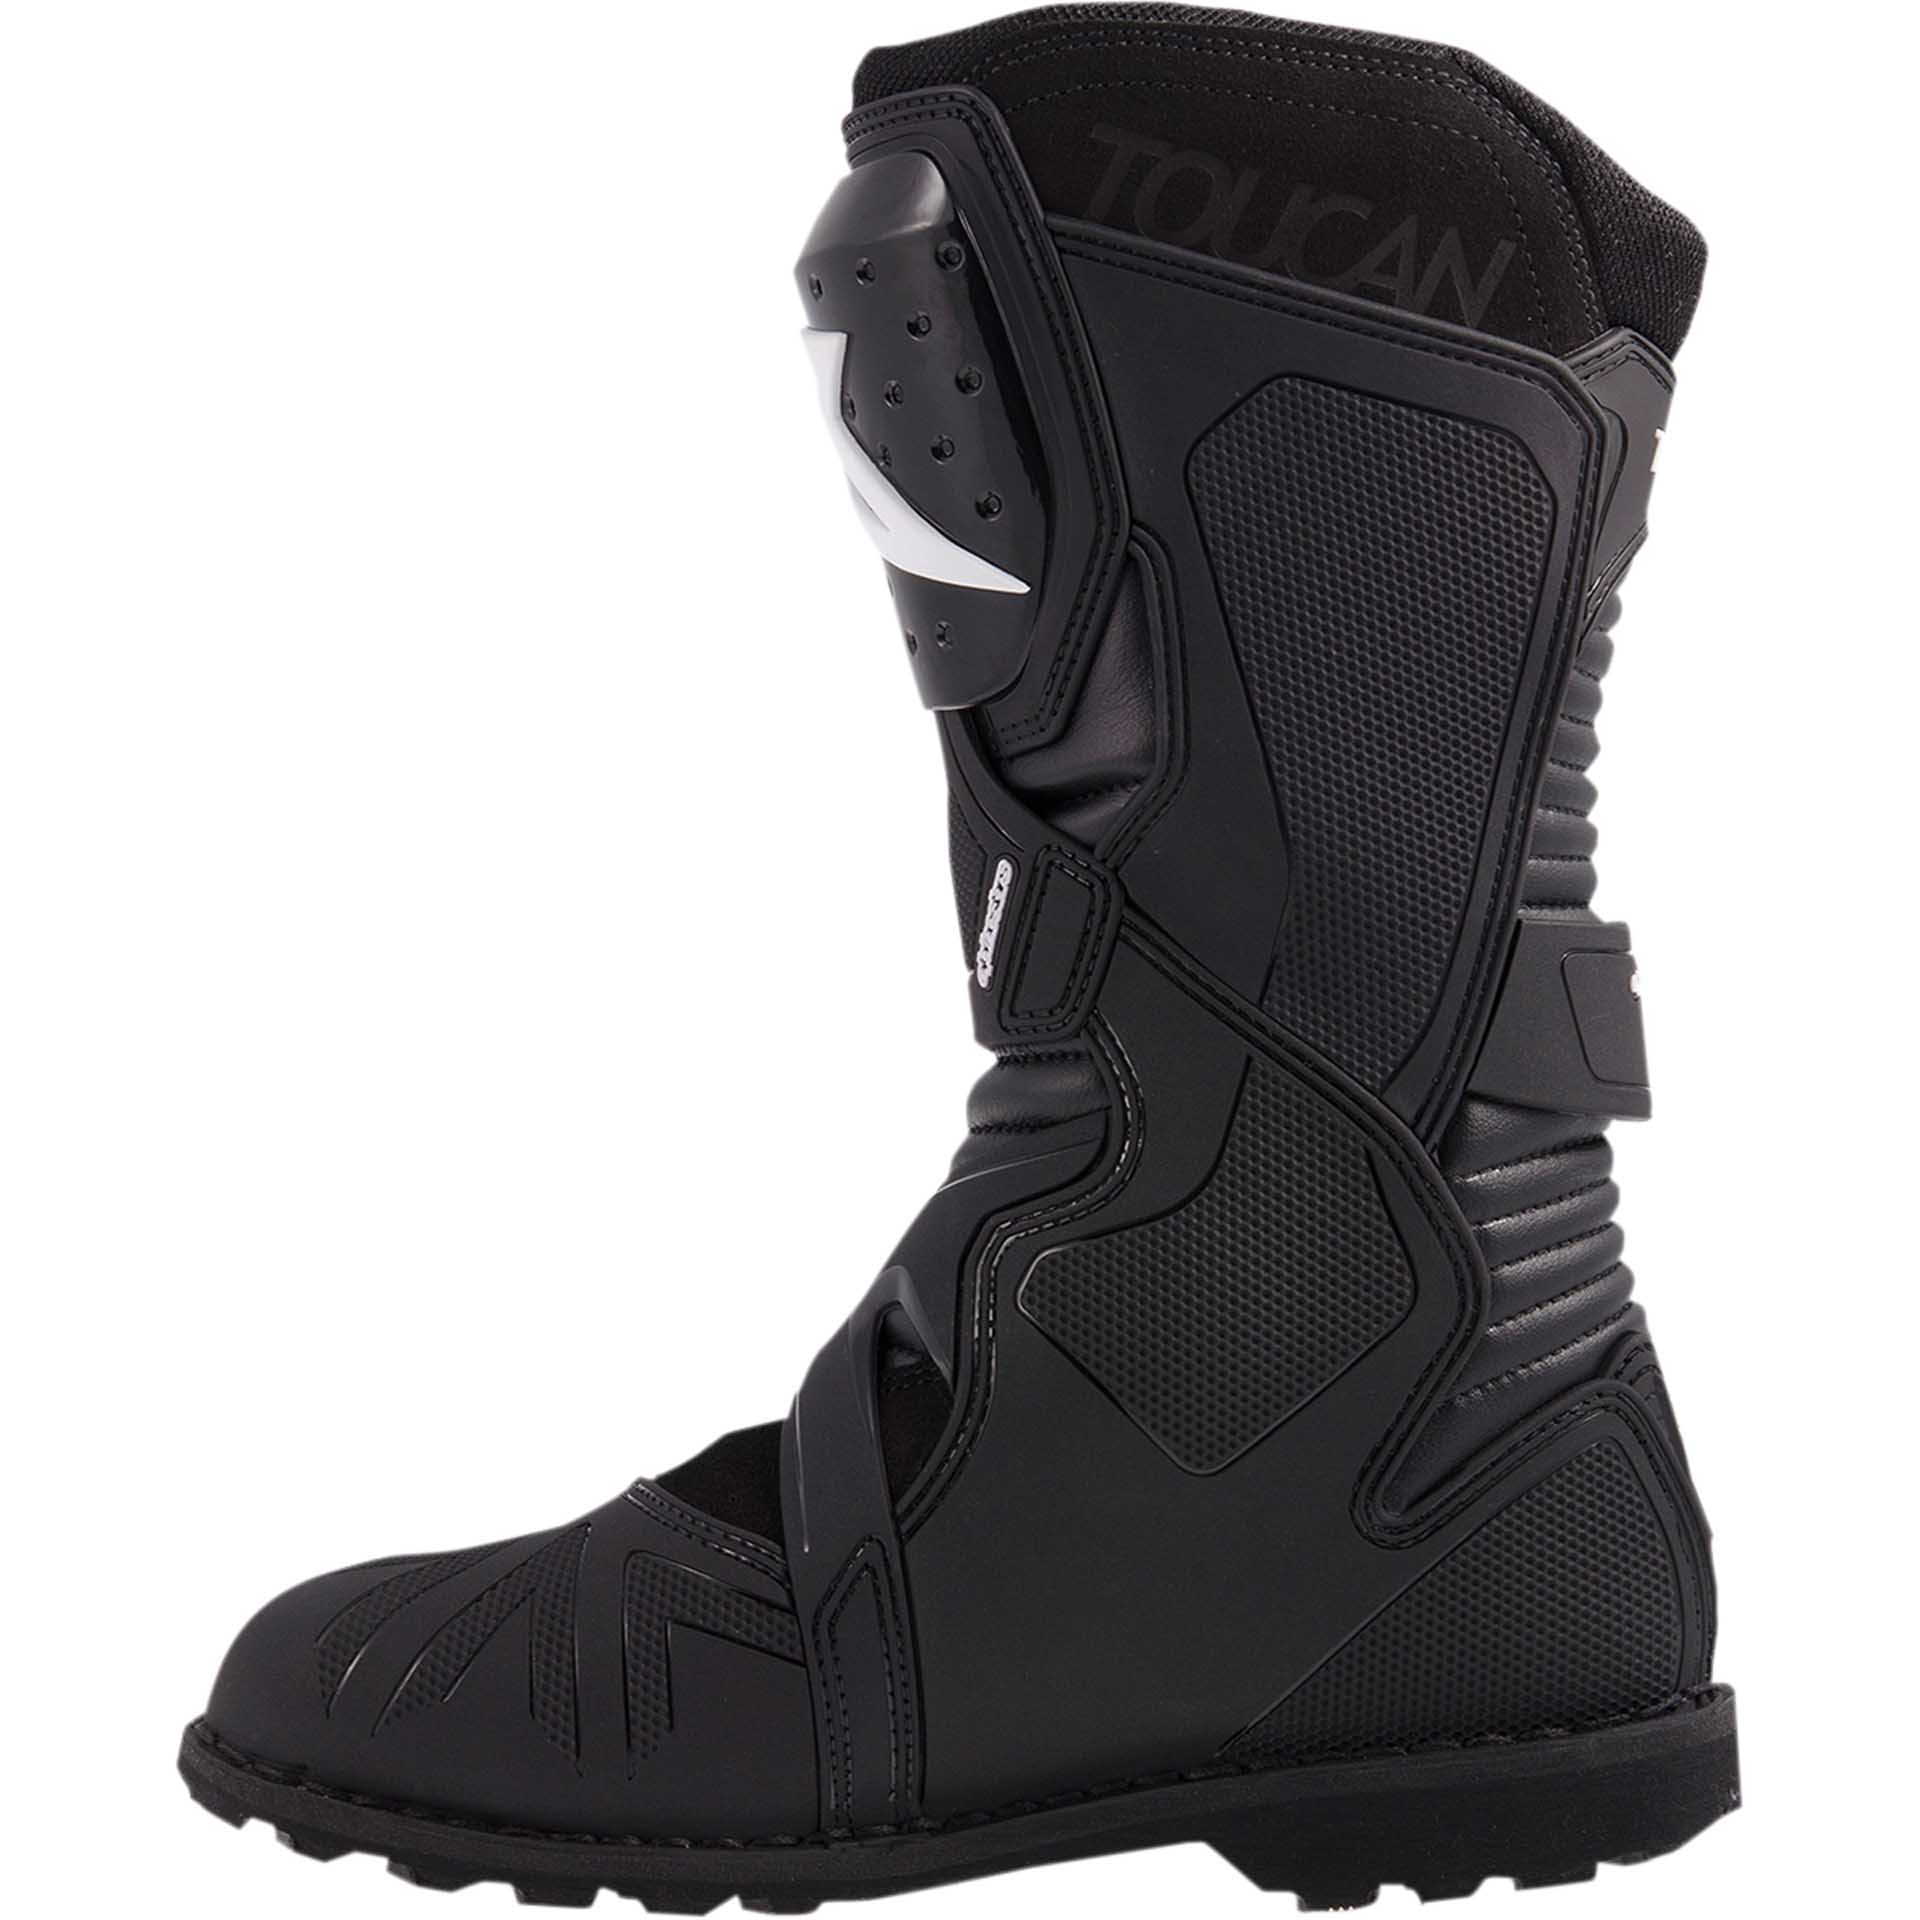 7 BLACK Firstgear Womens Zenster Boots